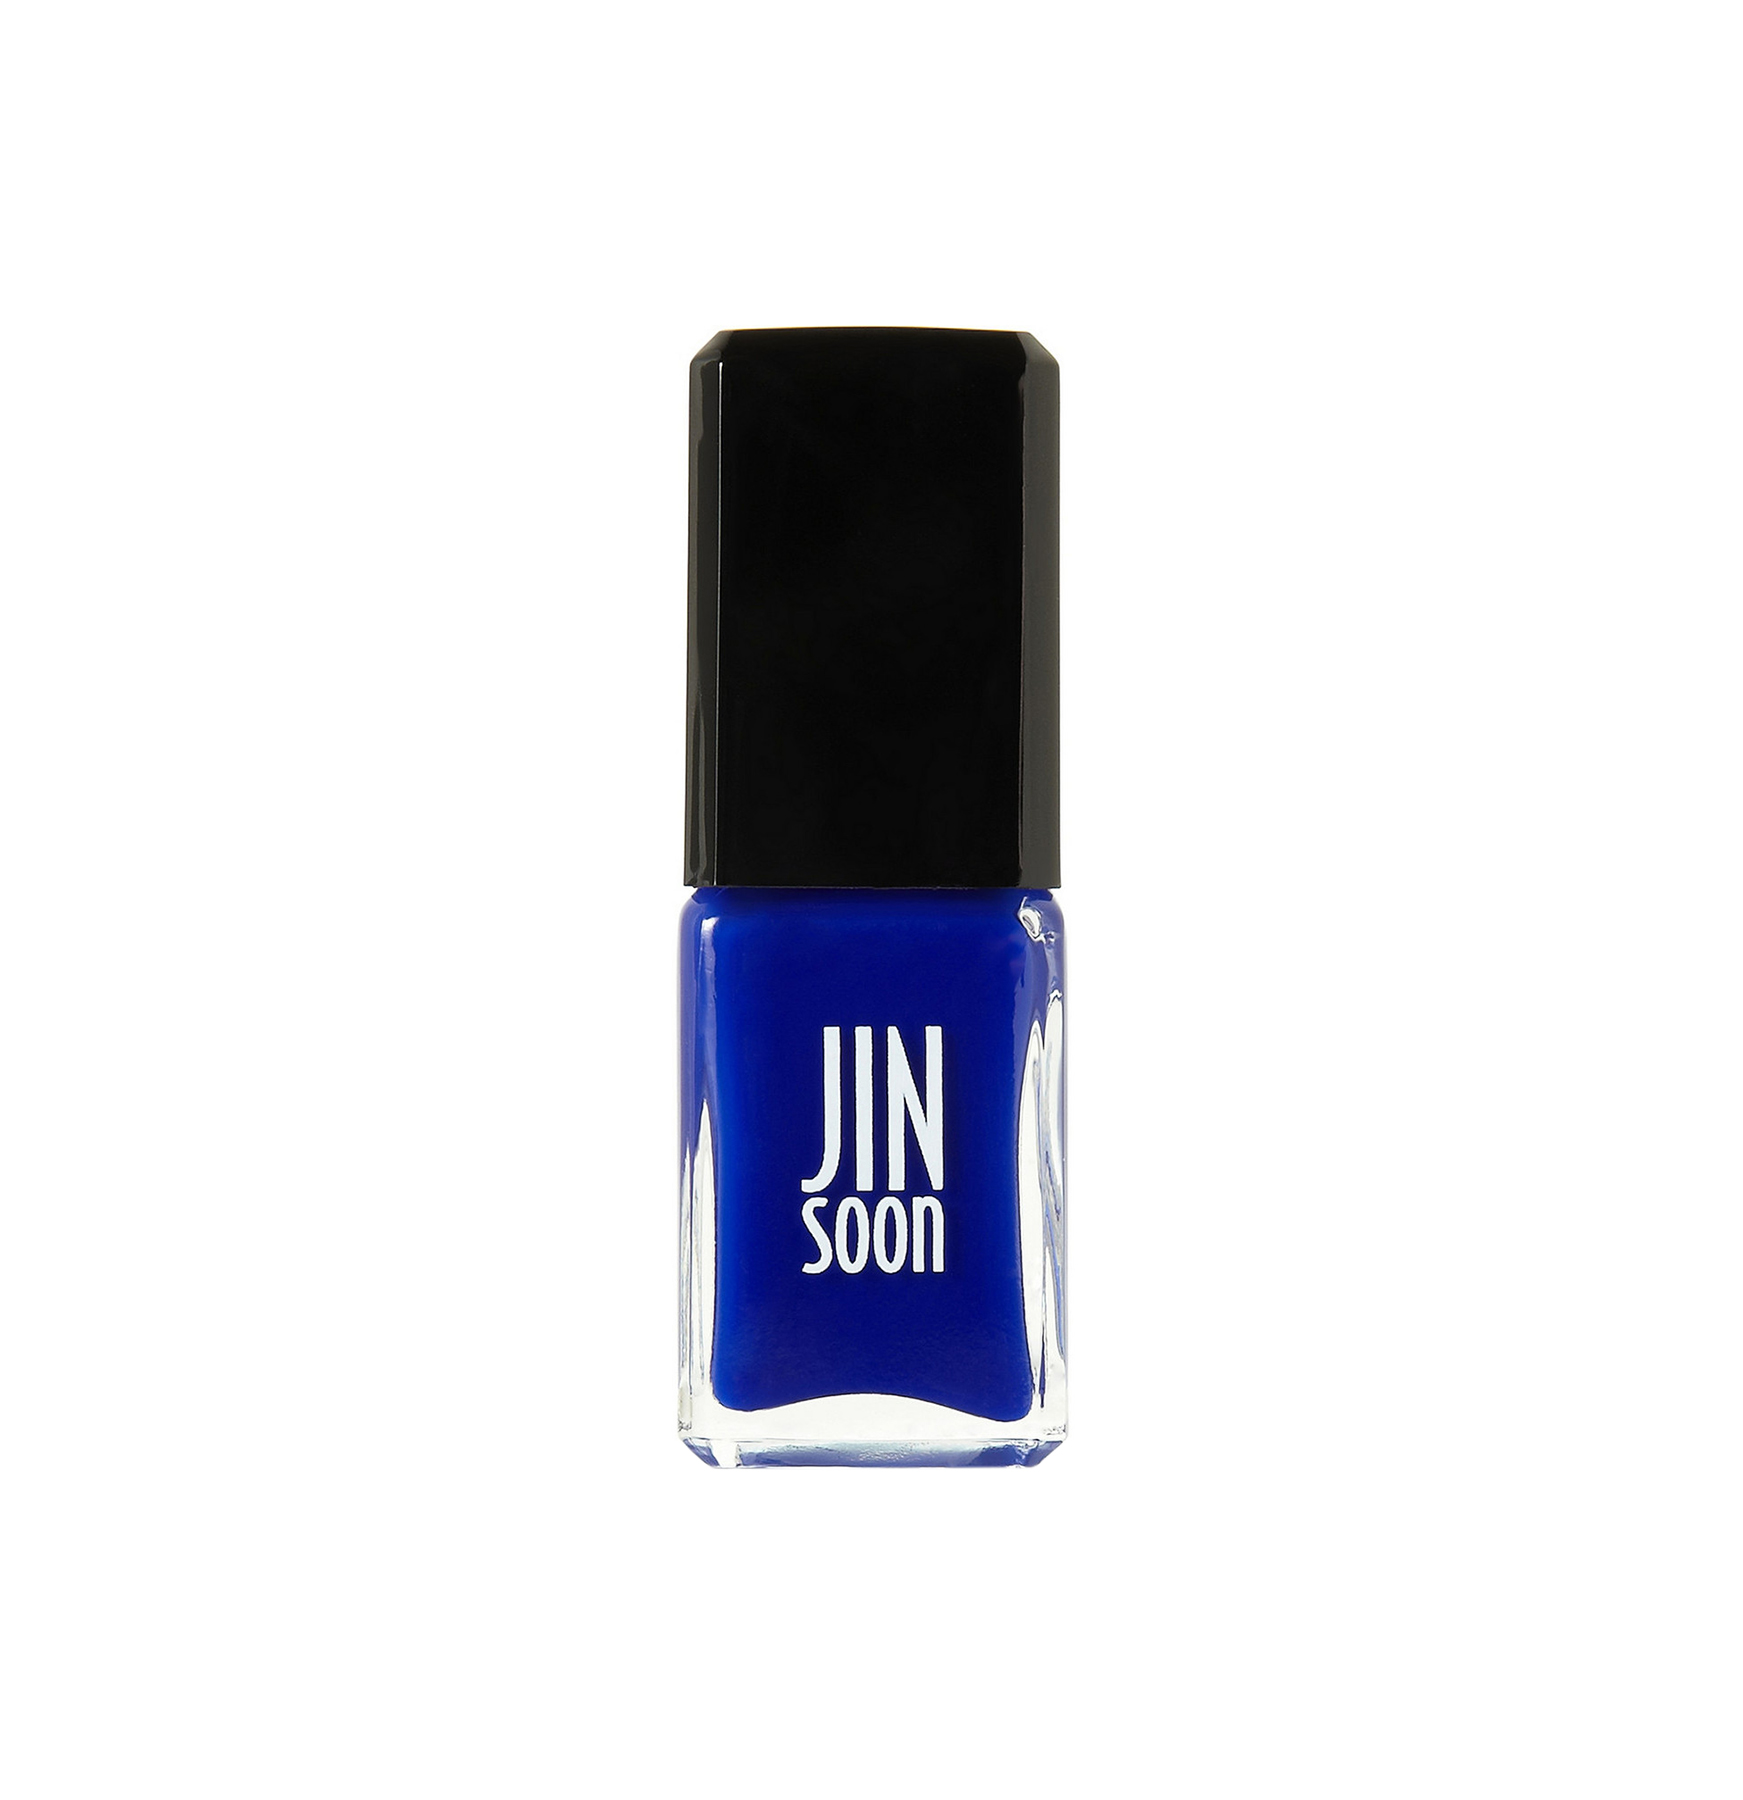 JinSoon Nail Polish in Blue Iris